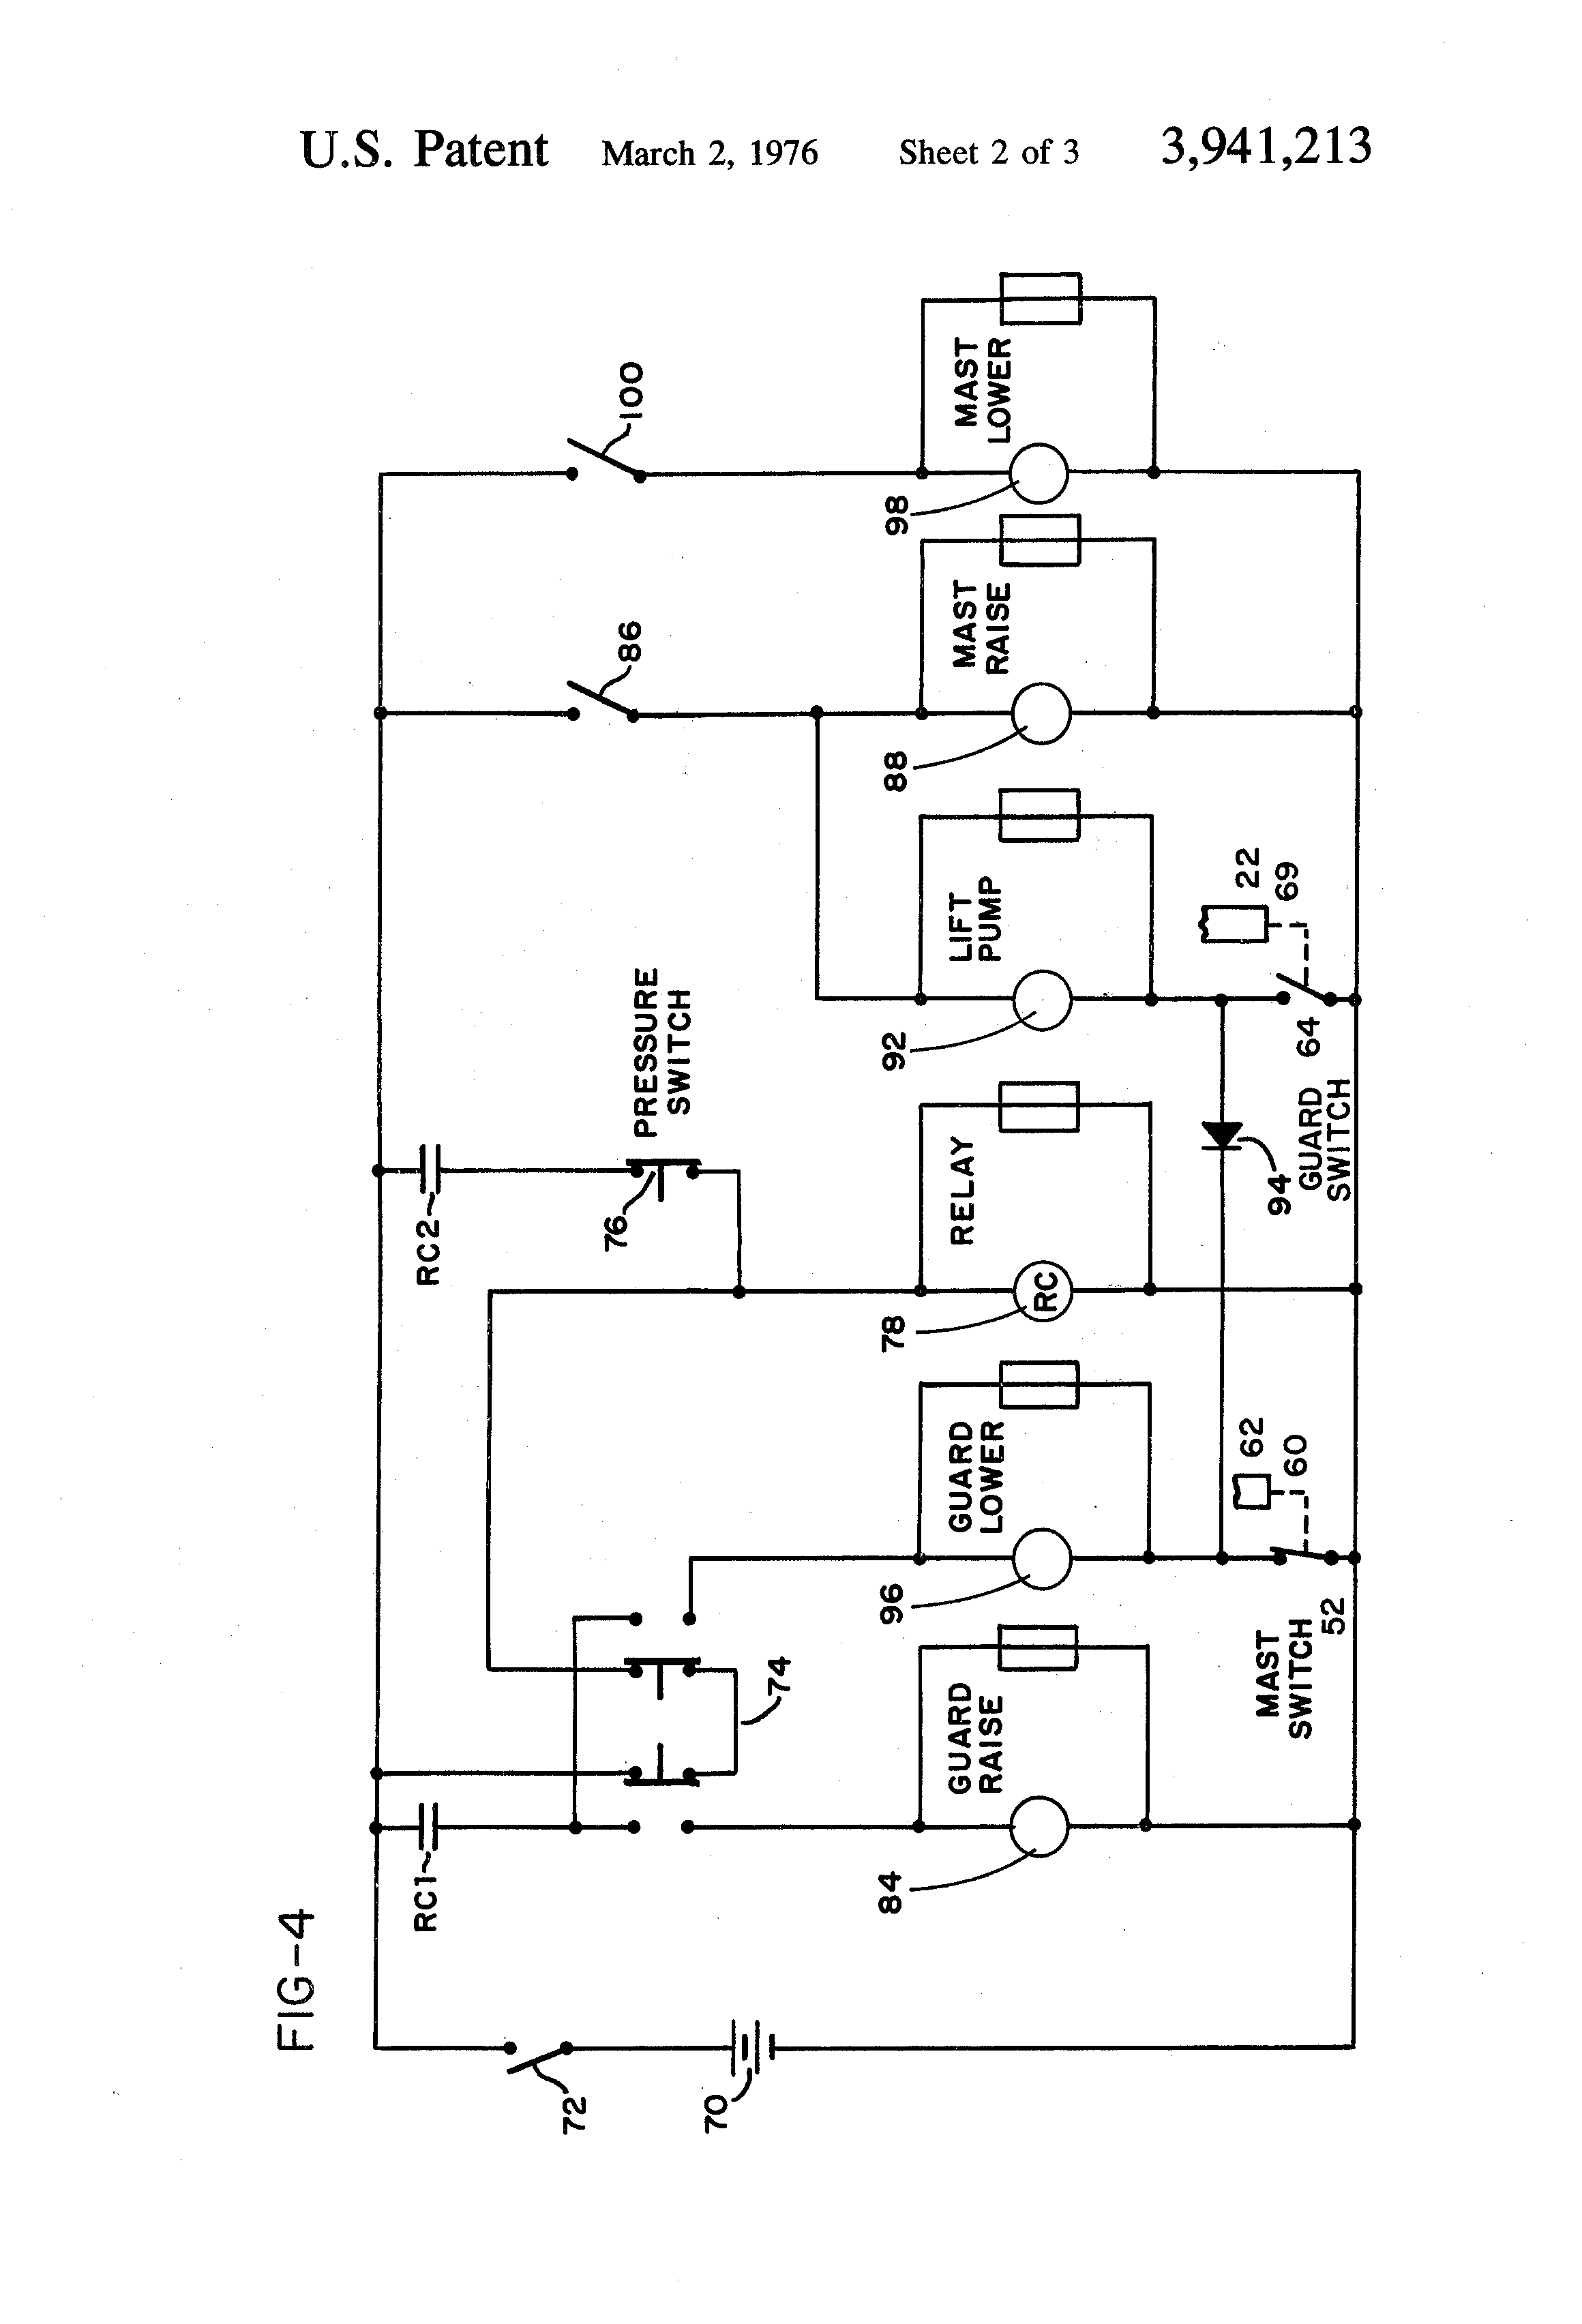 patent us fork lift limit switch controlled patent drawing